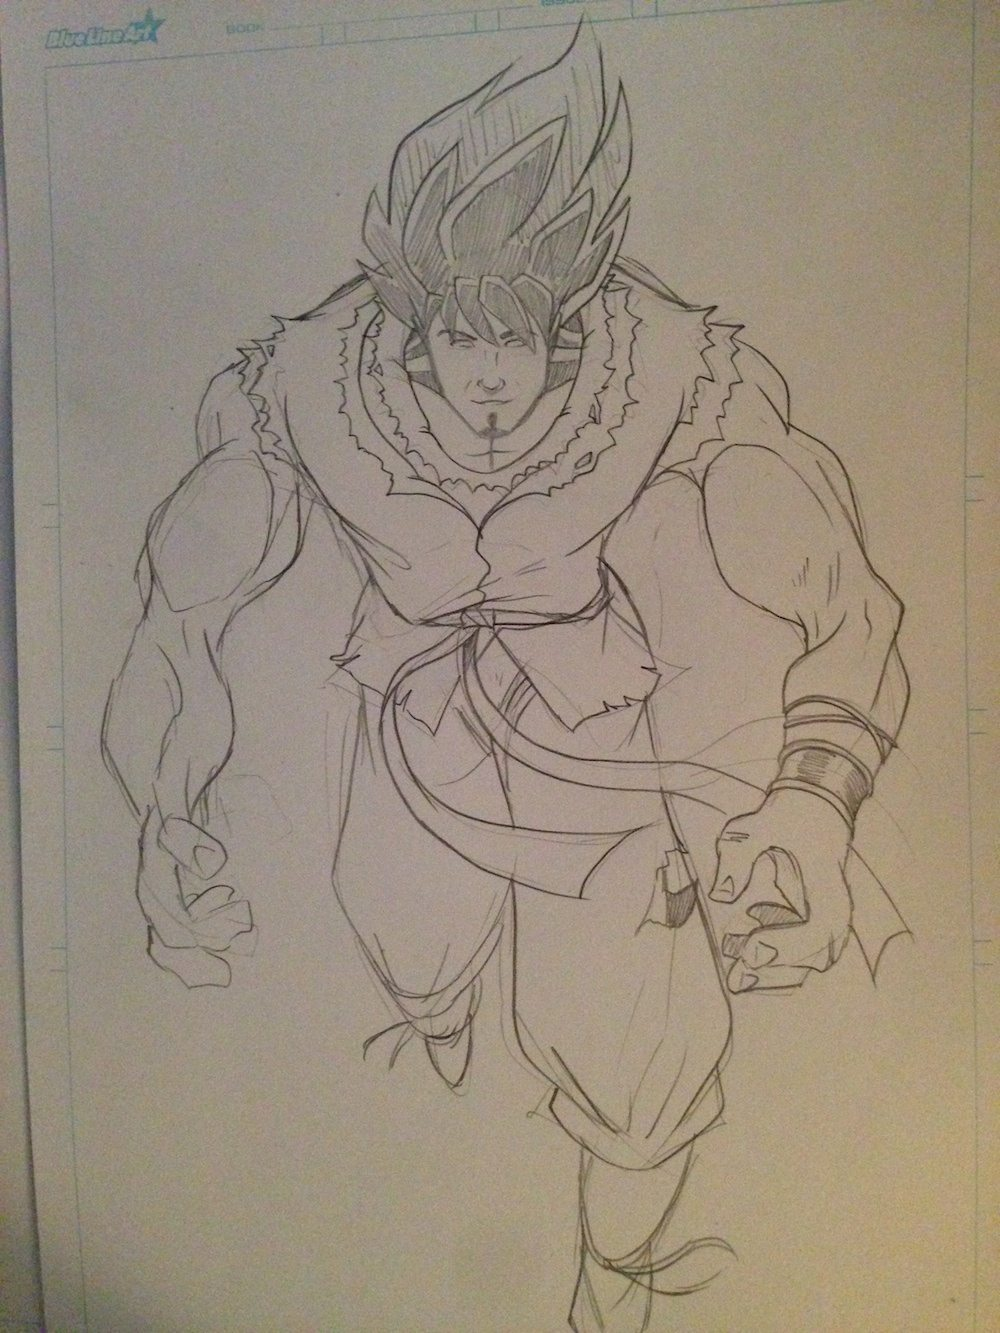 Dragon Ball Z Inspired Portrait Draft by Clay Graham